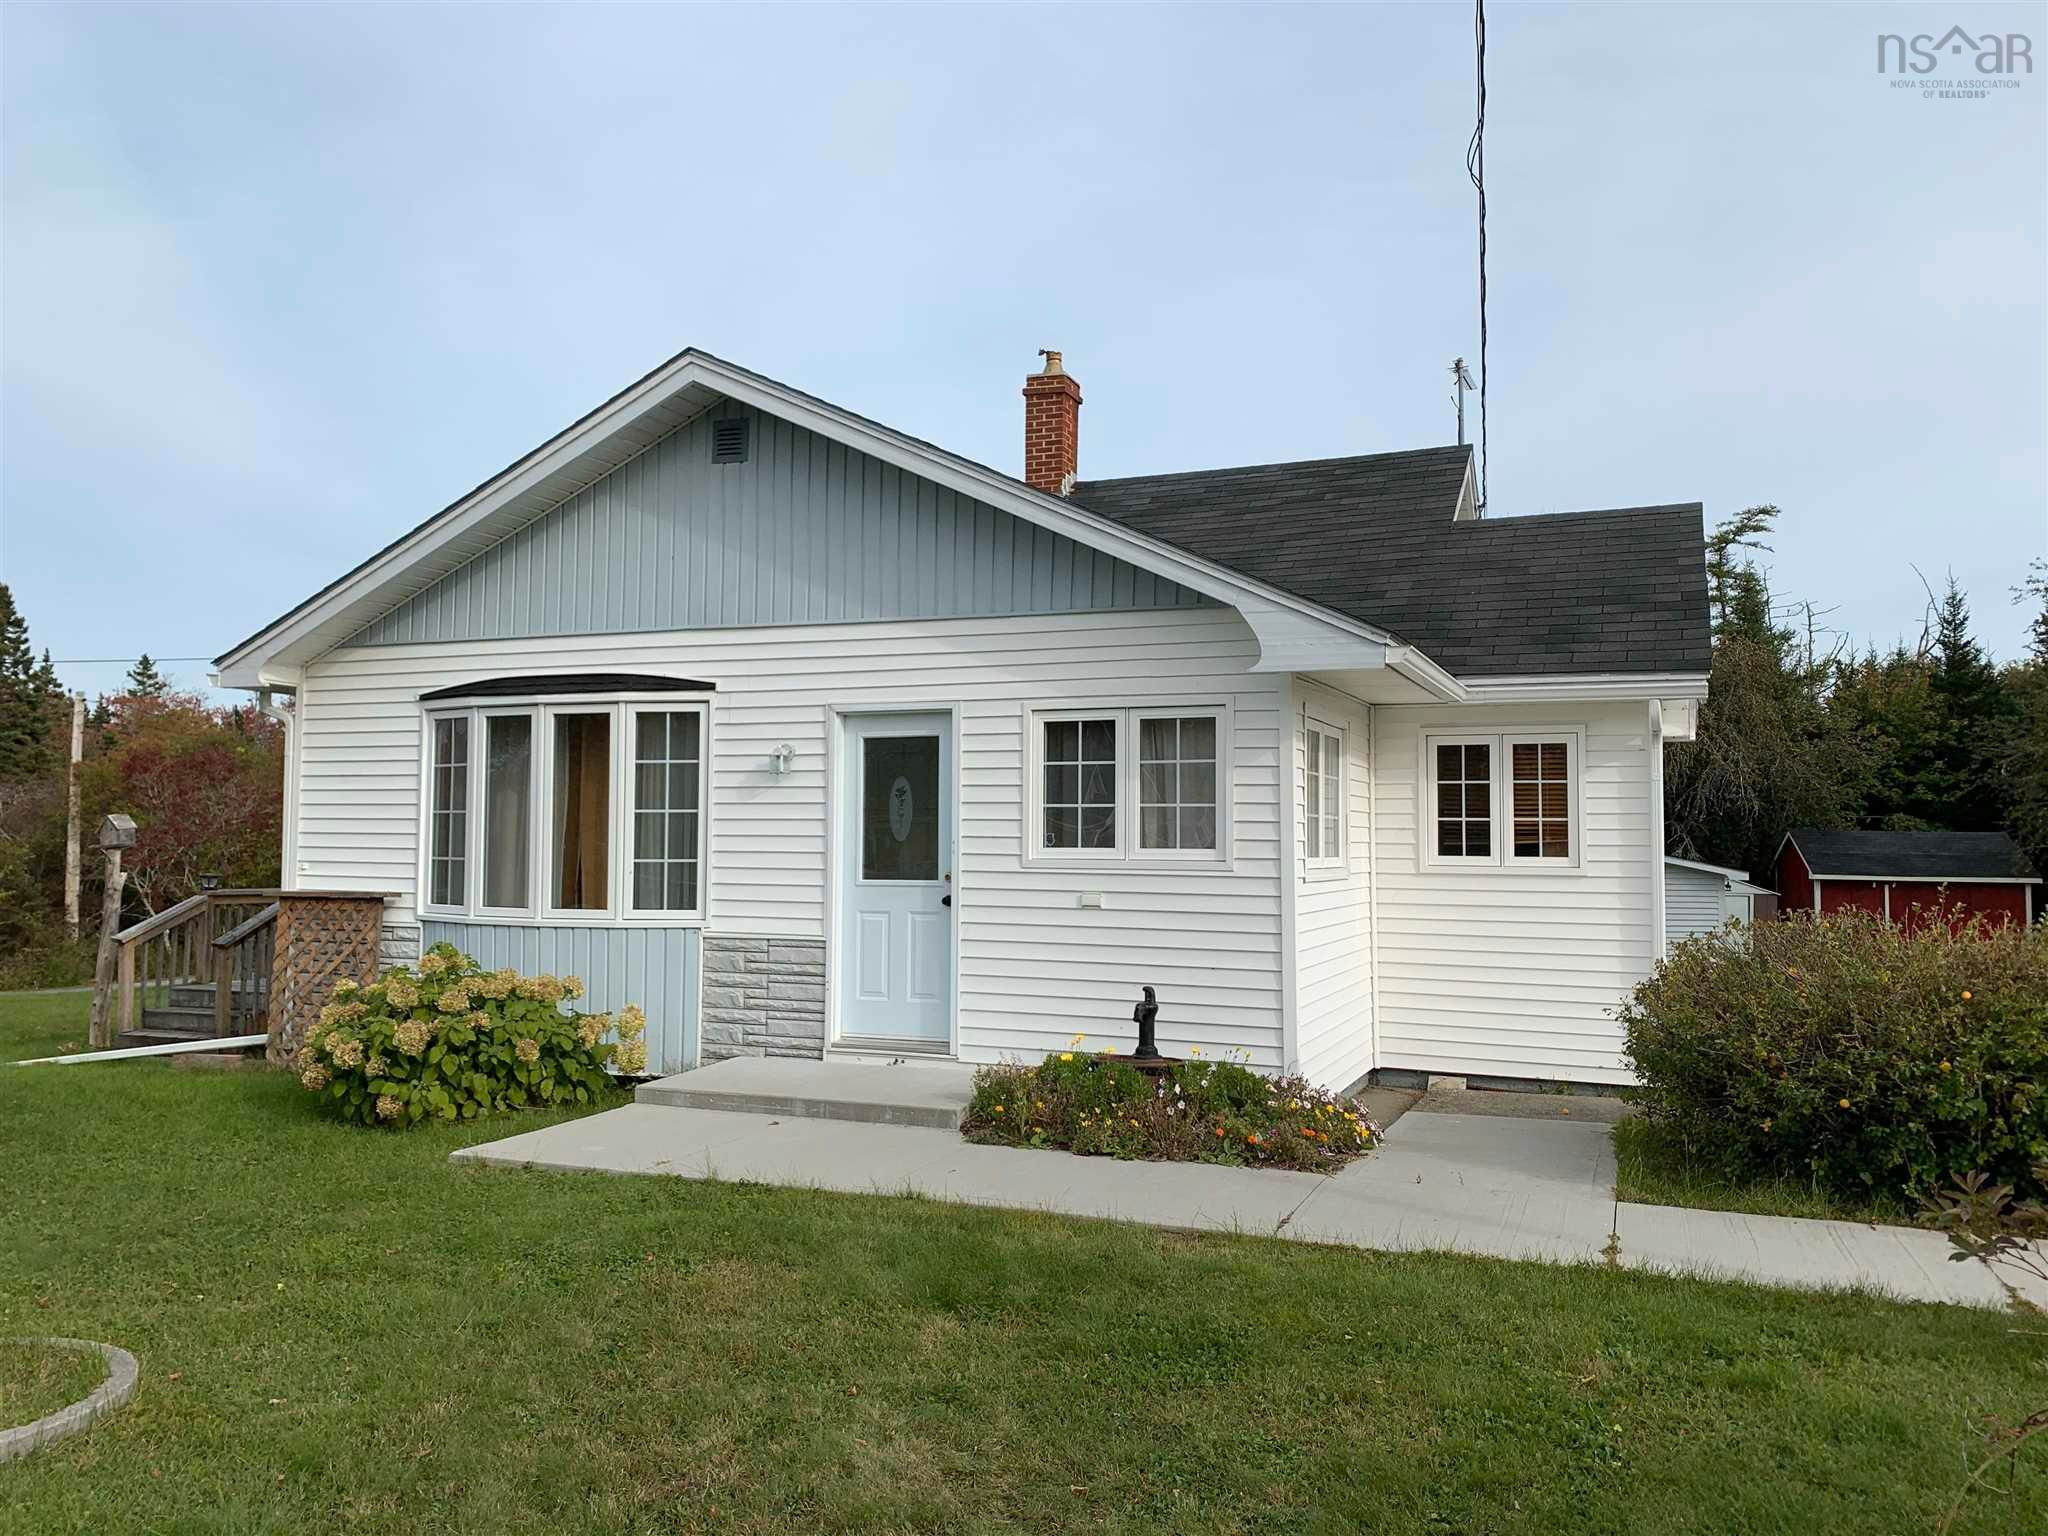 Main Photo: 135 West Green Harbour Road in West Green Harbour: 407-Shelburne County Residential for sale (South Shore)  : MLS®# 202125775